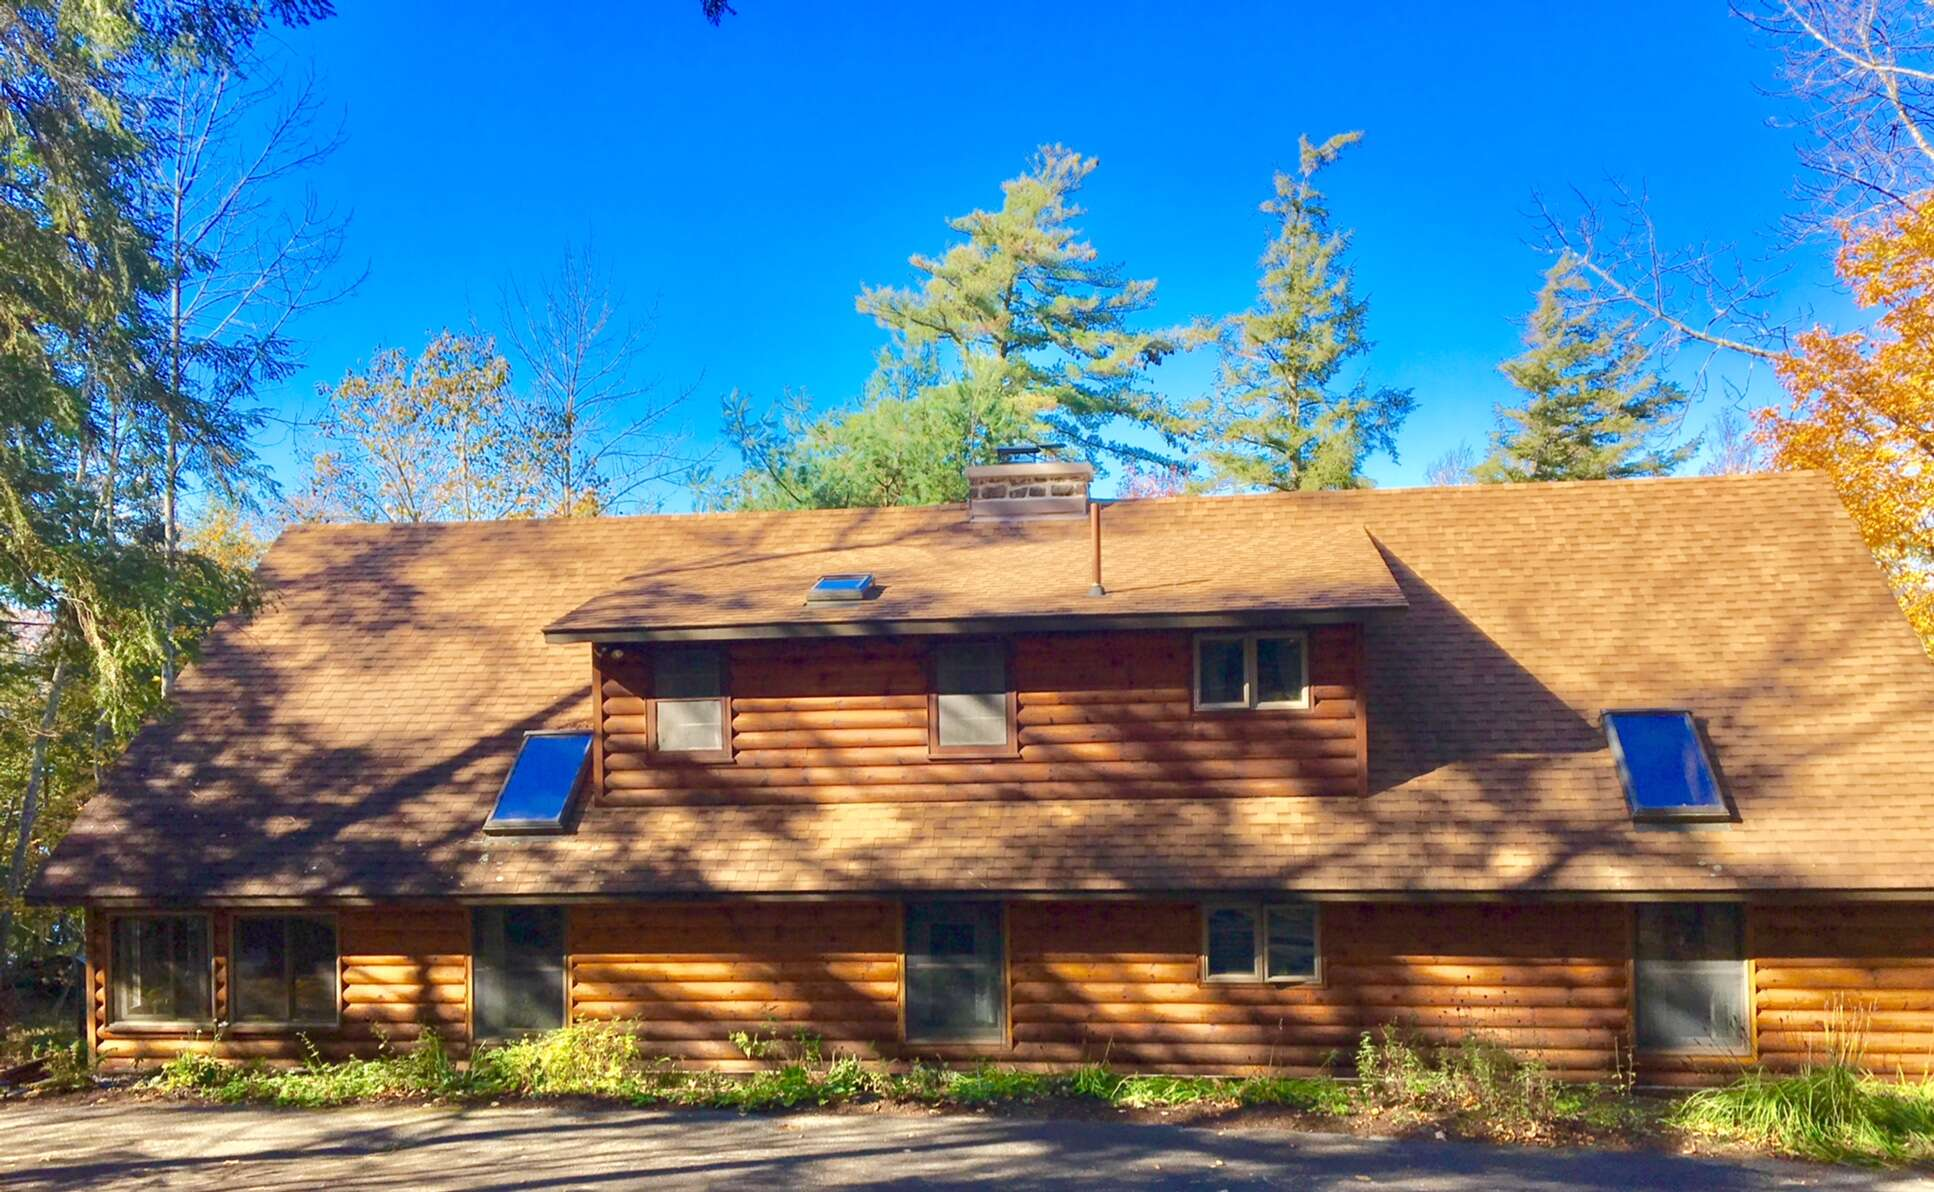 Vacation Property for Sale at 745 Adirondack Rd Schroon Lake, New York 12870 United States